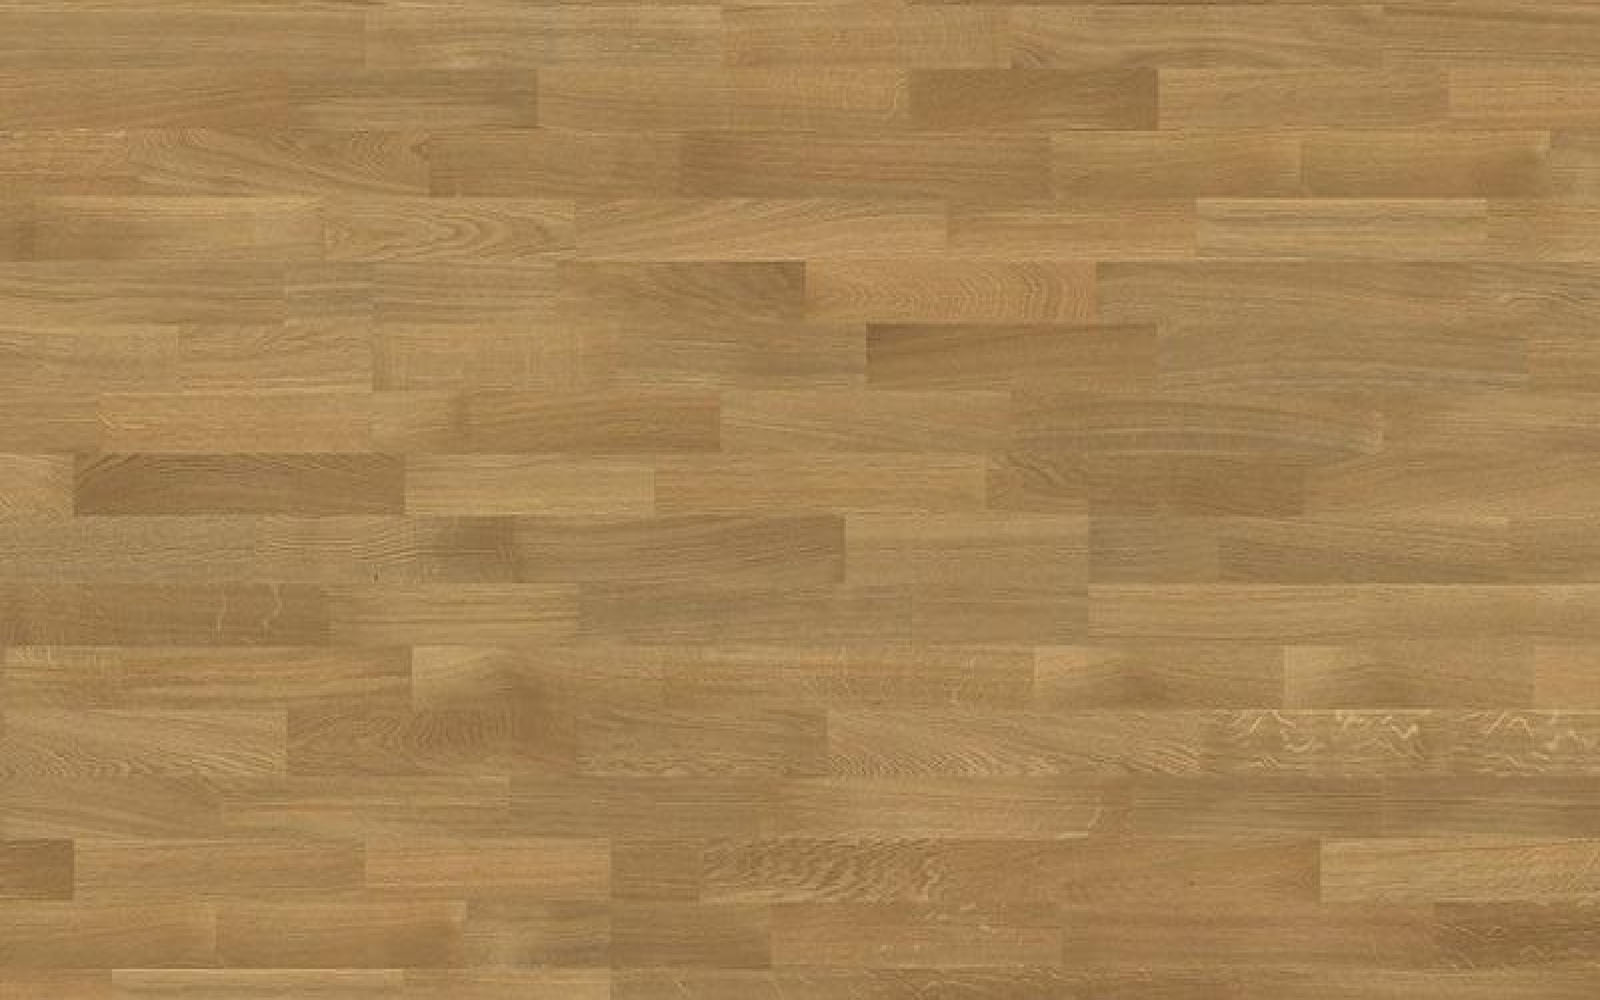 Паркетная доска Upofloor Tempo Дуб Select Oiled (селект масло) 3S